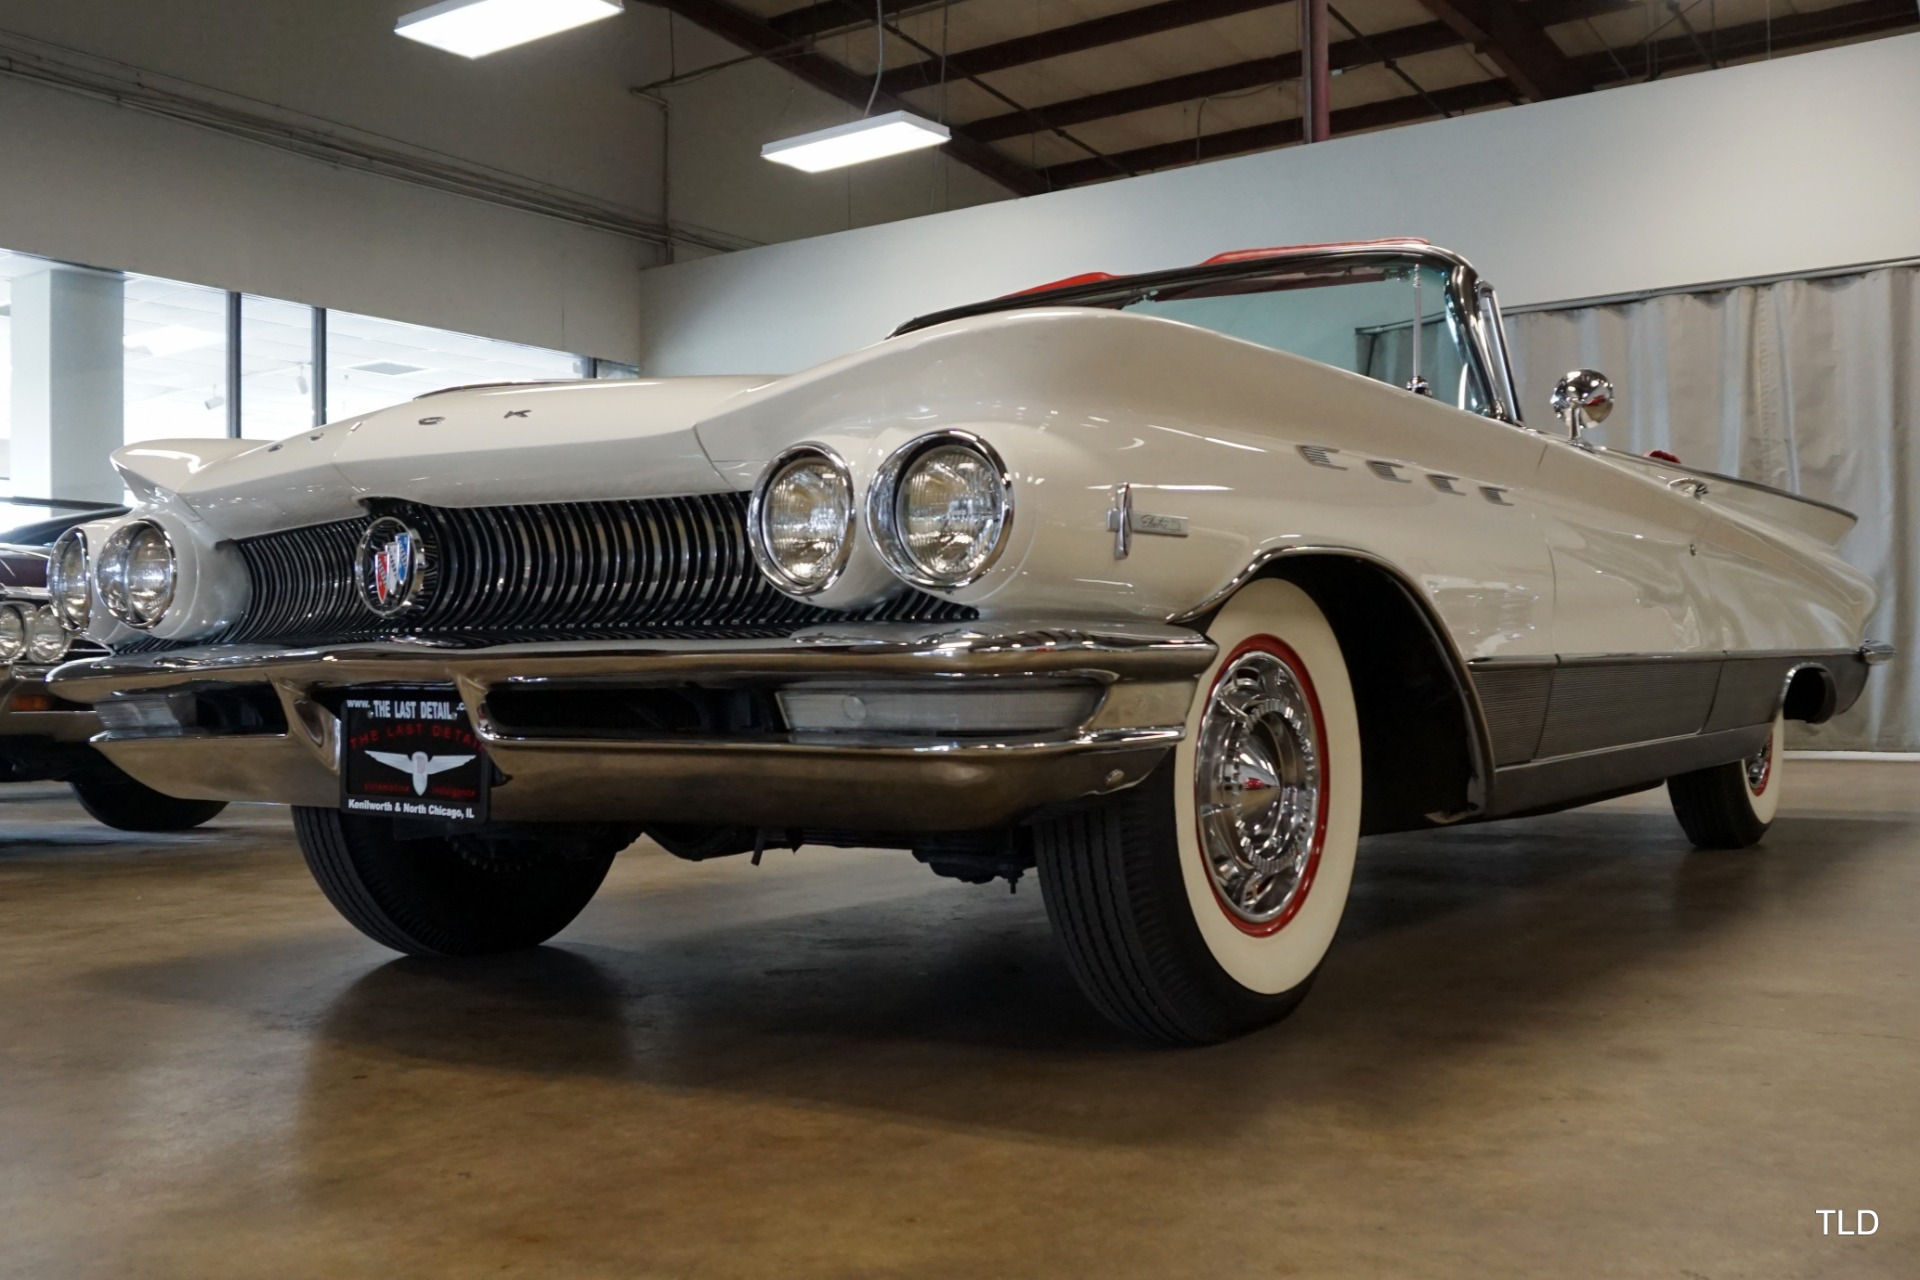 Classic Luxury Cars For Sale Cars On Line Com Classic Cars For Sale